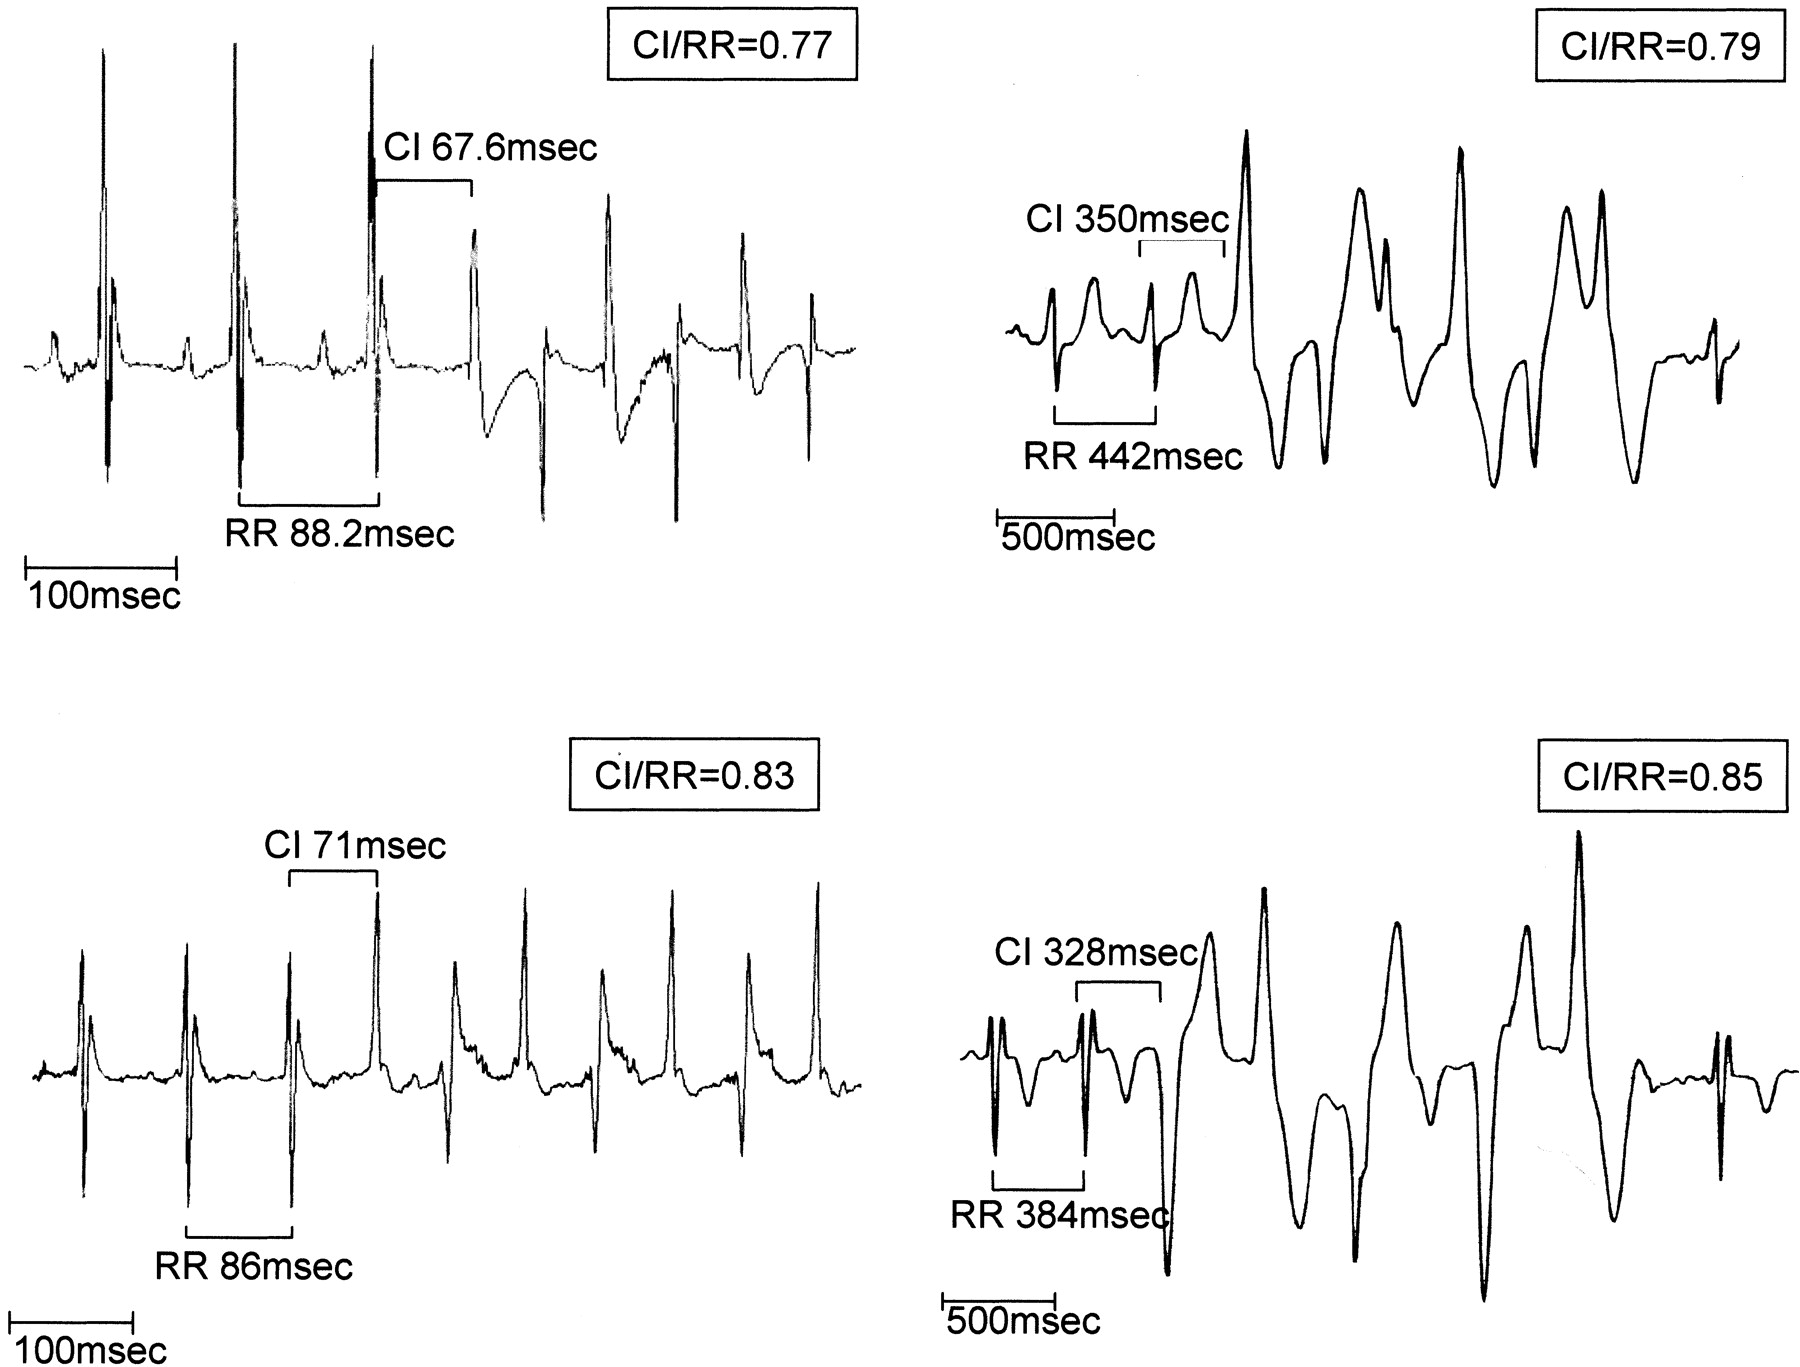 Bidirectional Ventricular Tachycardia And Fibrillation Elicited In A Knock In Mouse Model Carrier Of A Mutation In The Cardiac Ryanodine Receptor Circulation Research